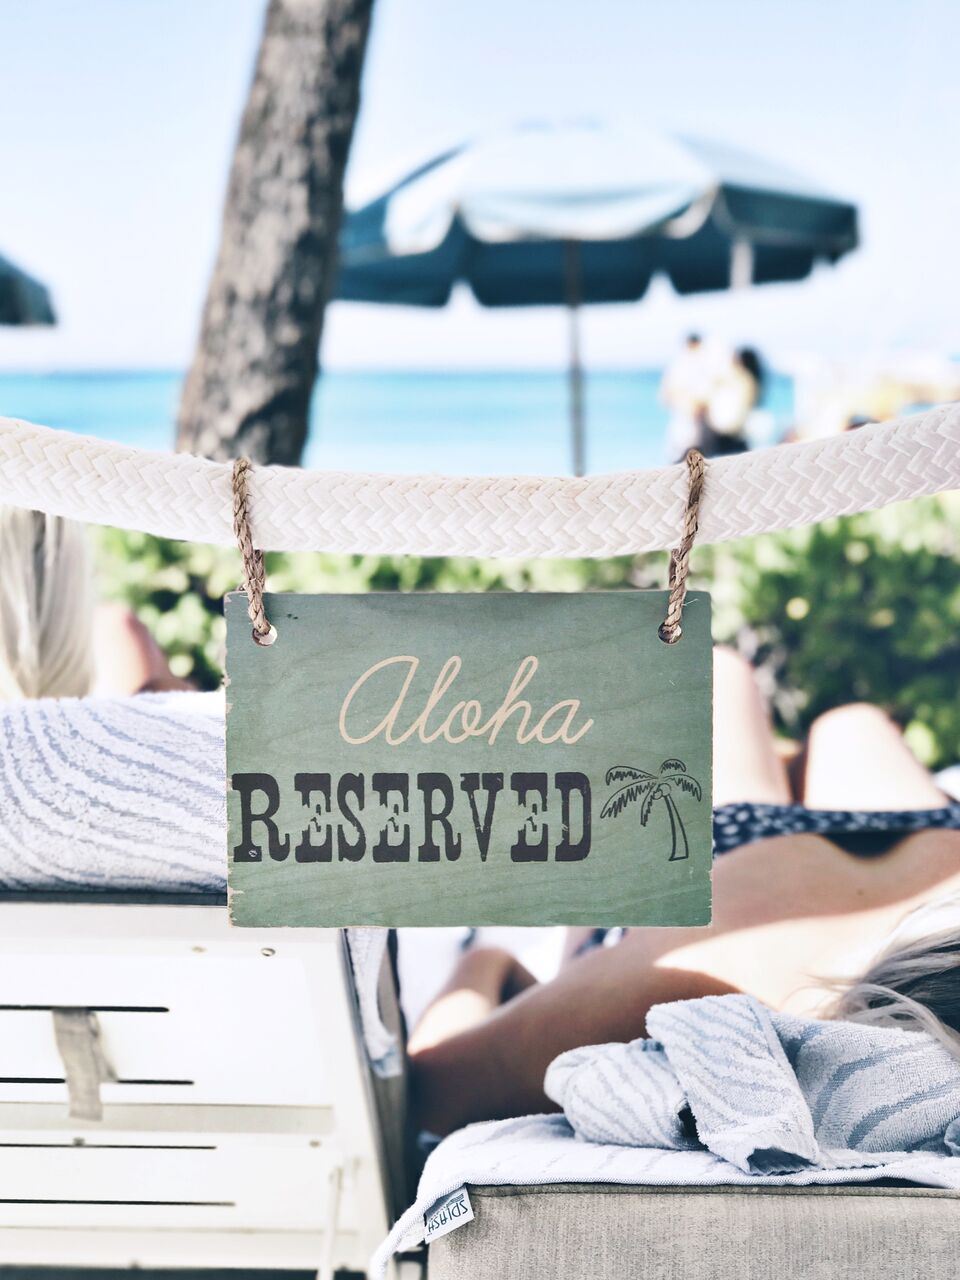 Aloha Reserved sign on the cabana at the Moana Surfrider Hotel in Honolulu Hawaii